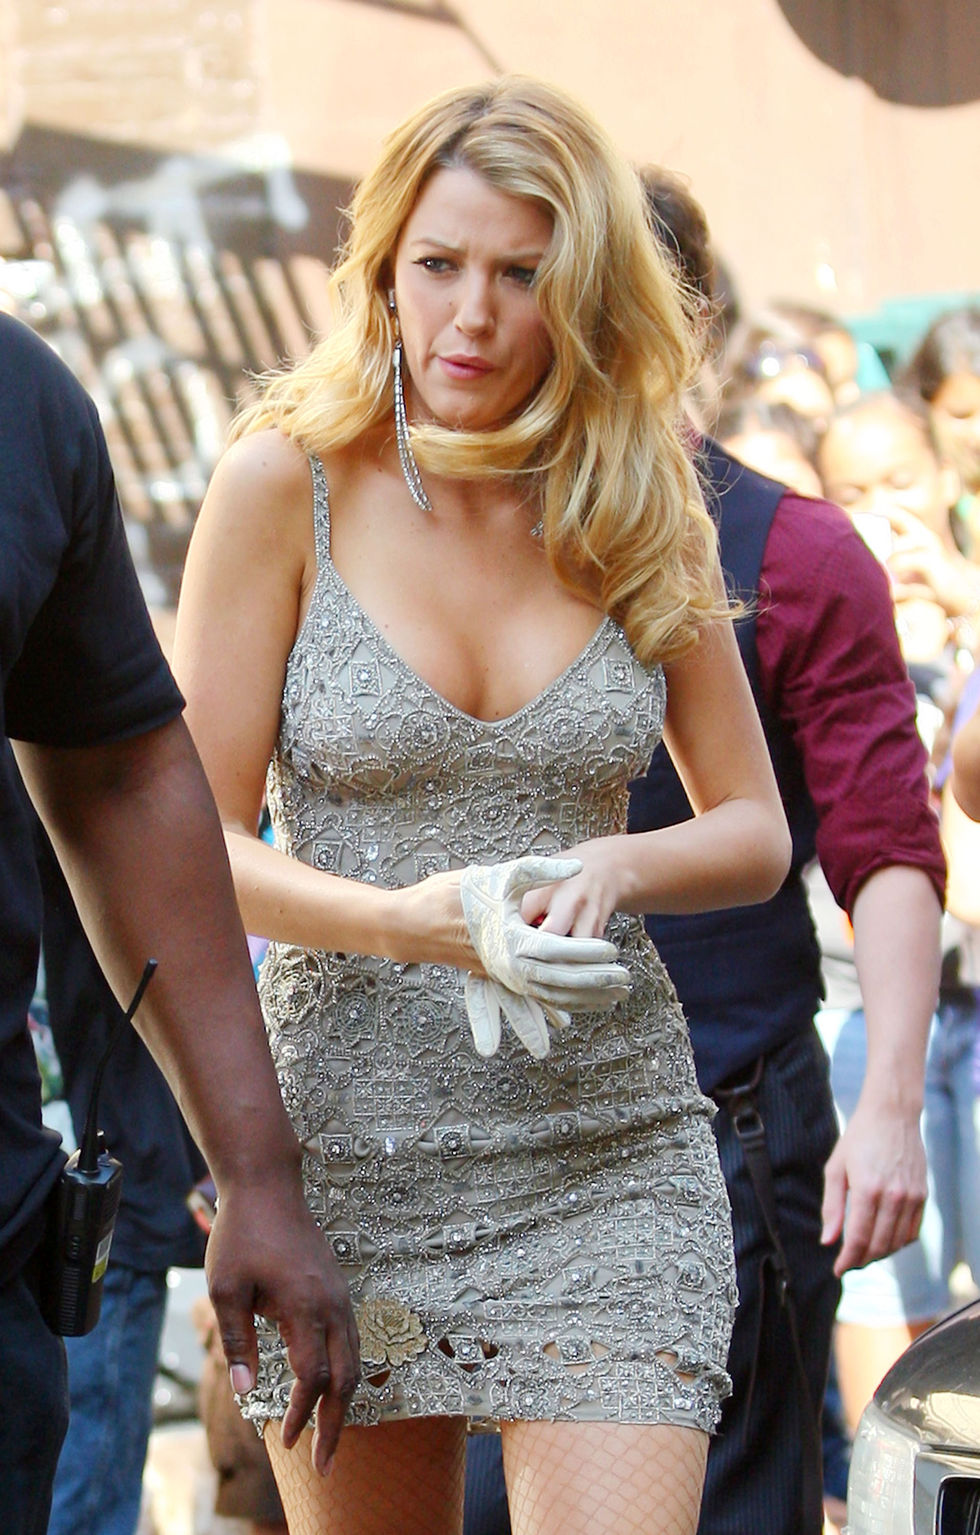 blake-lively-cleavage-candids-on-gossip-girl-set-in-new-york-01